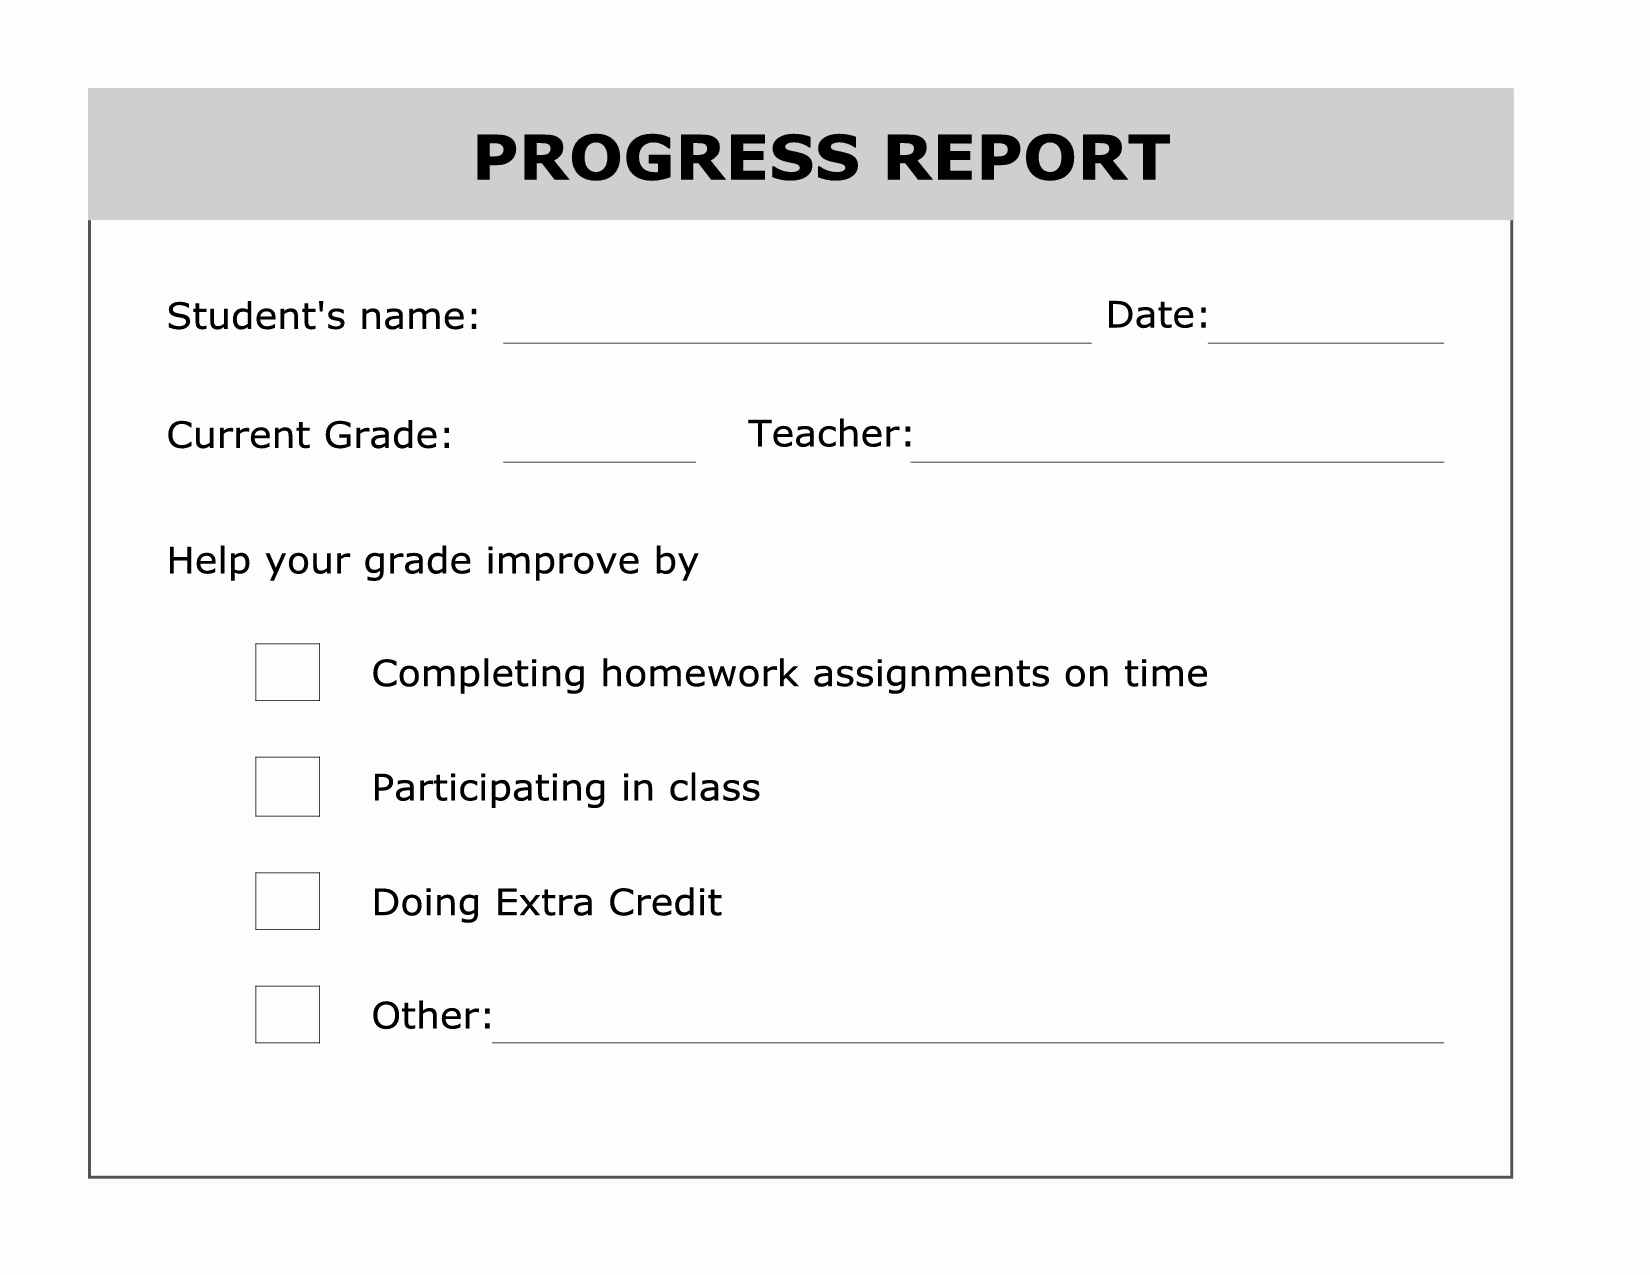 School Progress Report Template Inspirational Printable Progress Report Template Good Ideas